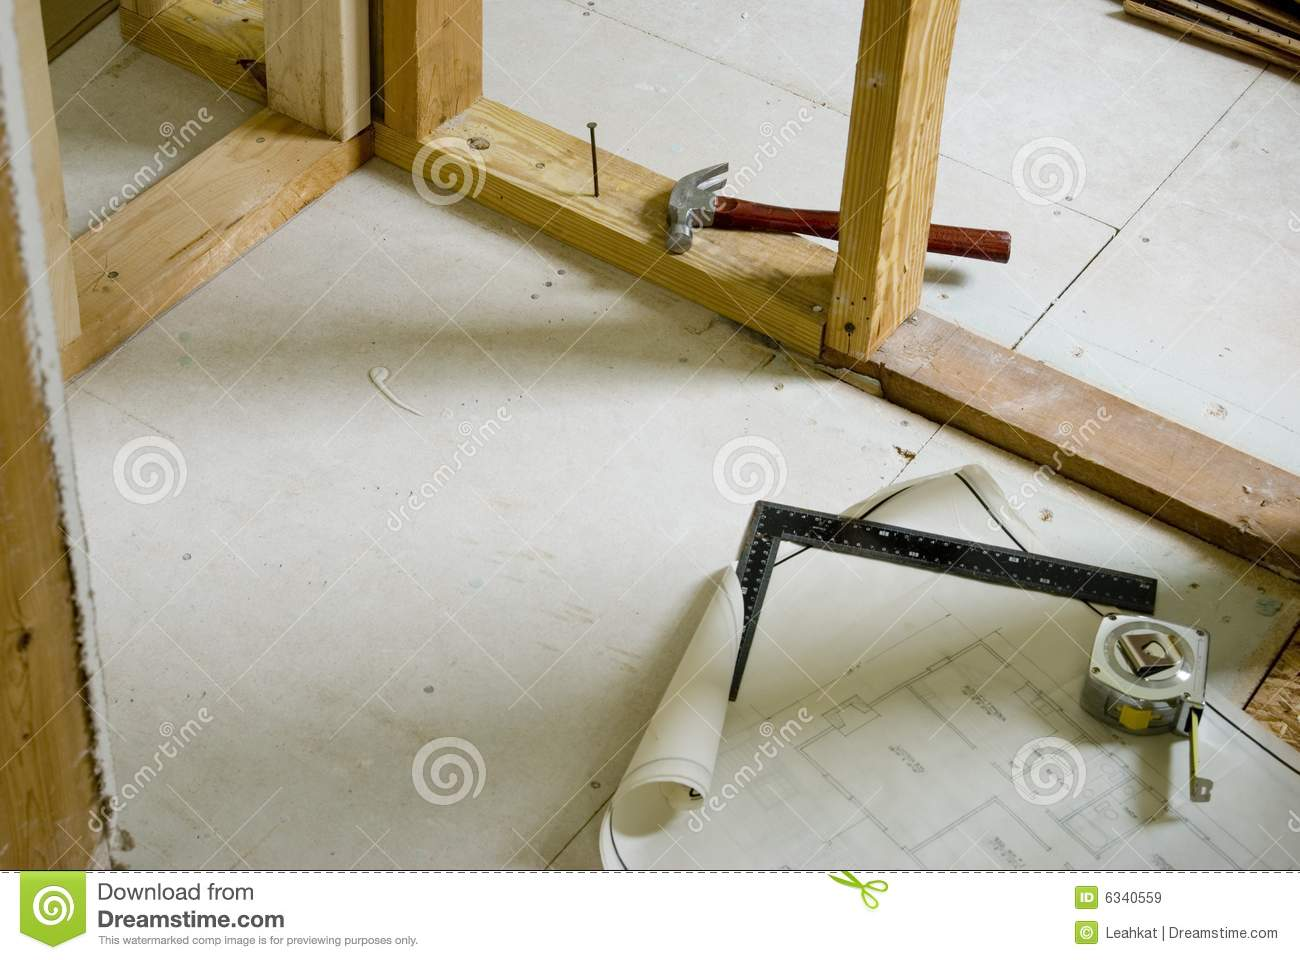 Home remodeling project